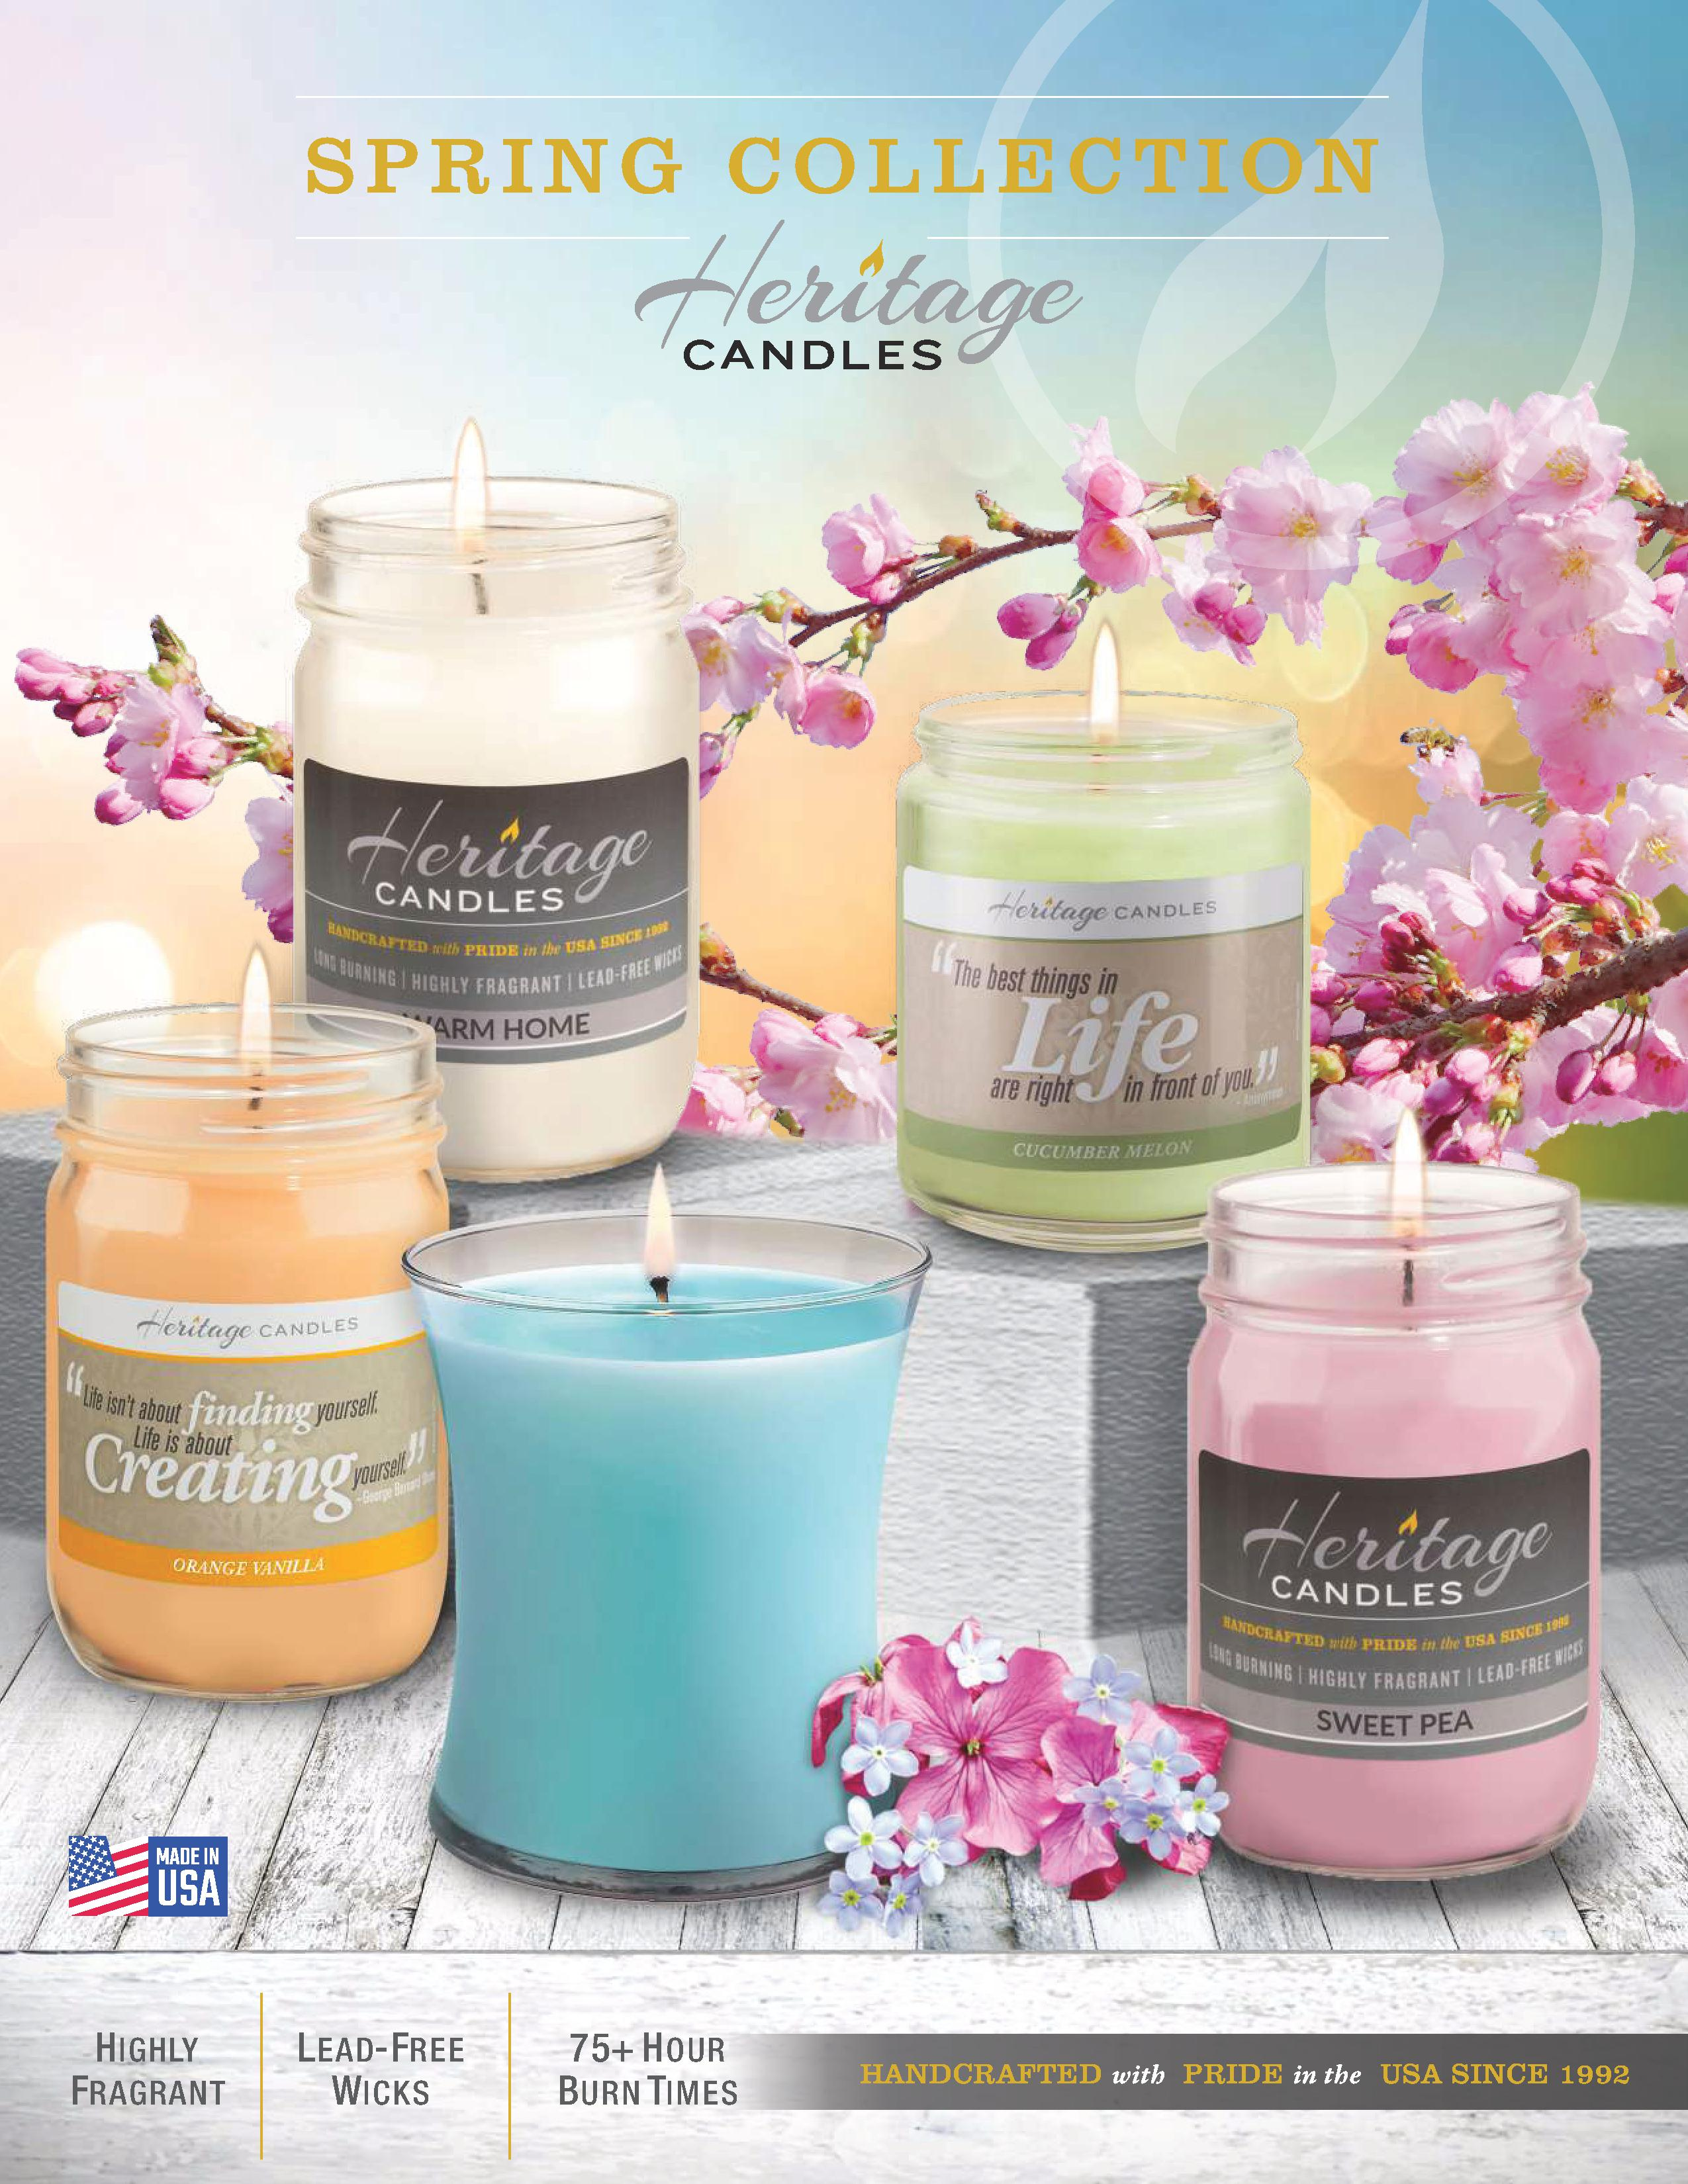 Heritage Candles Spring Collection 2020.